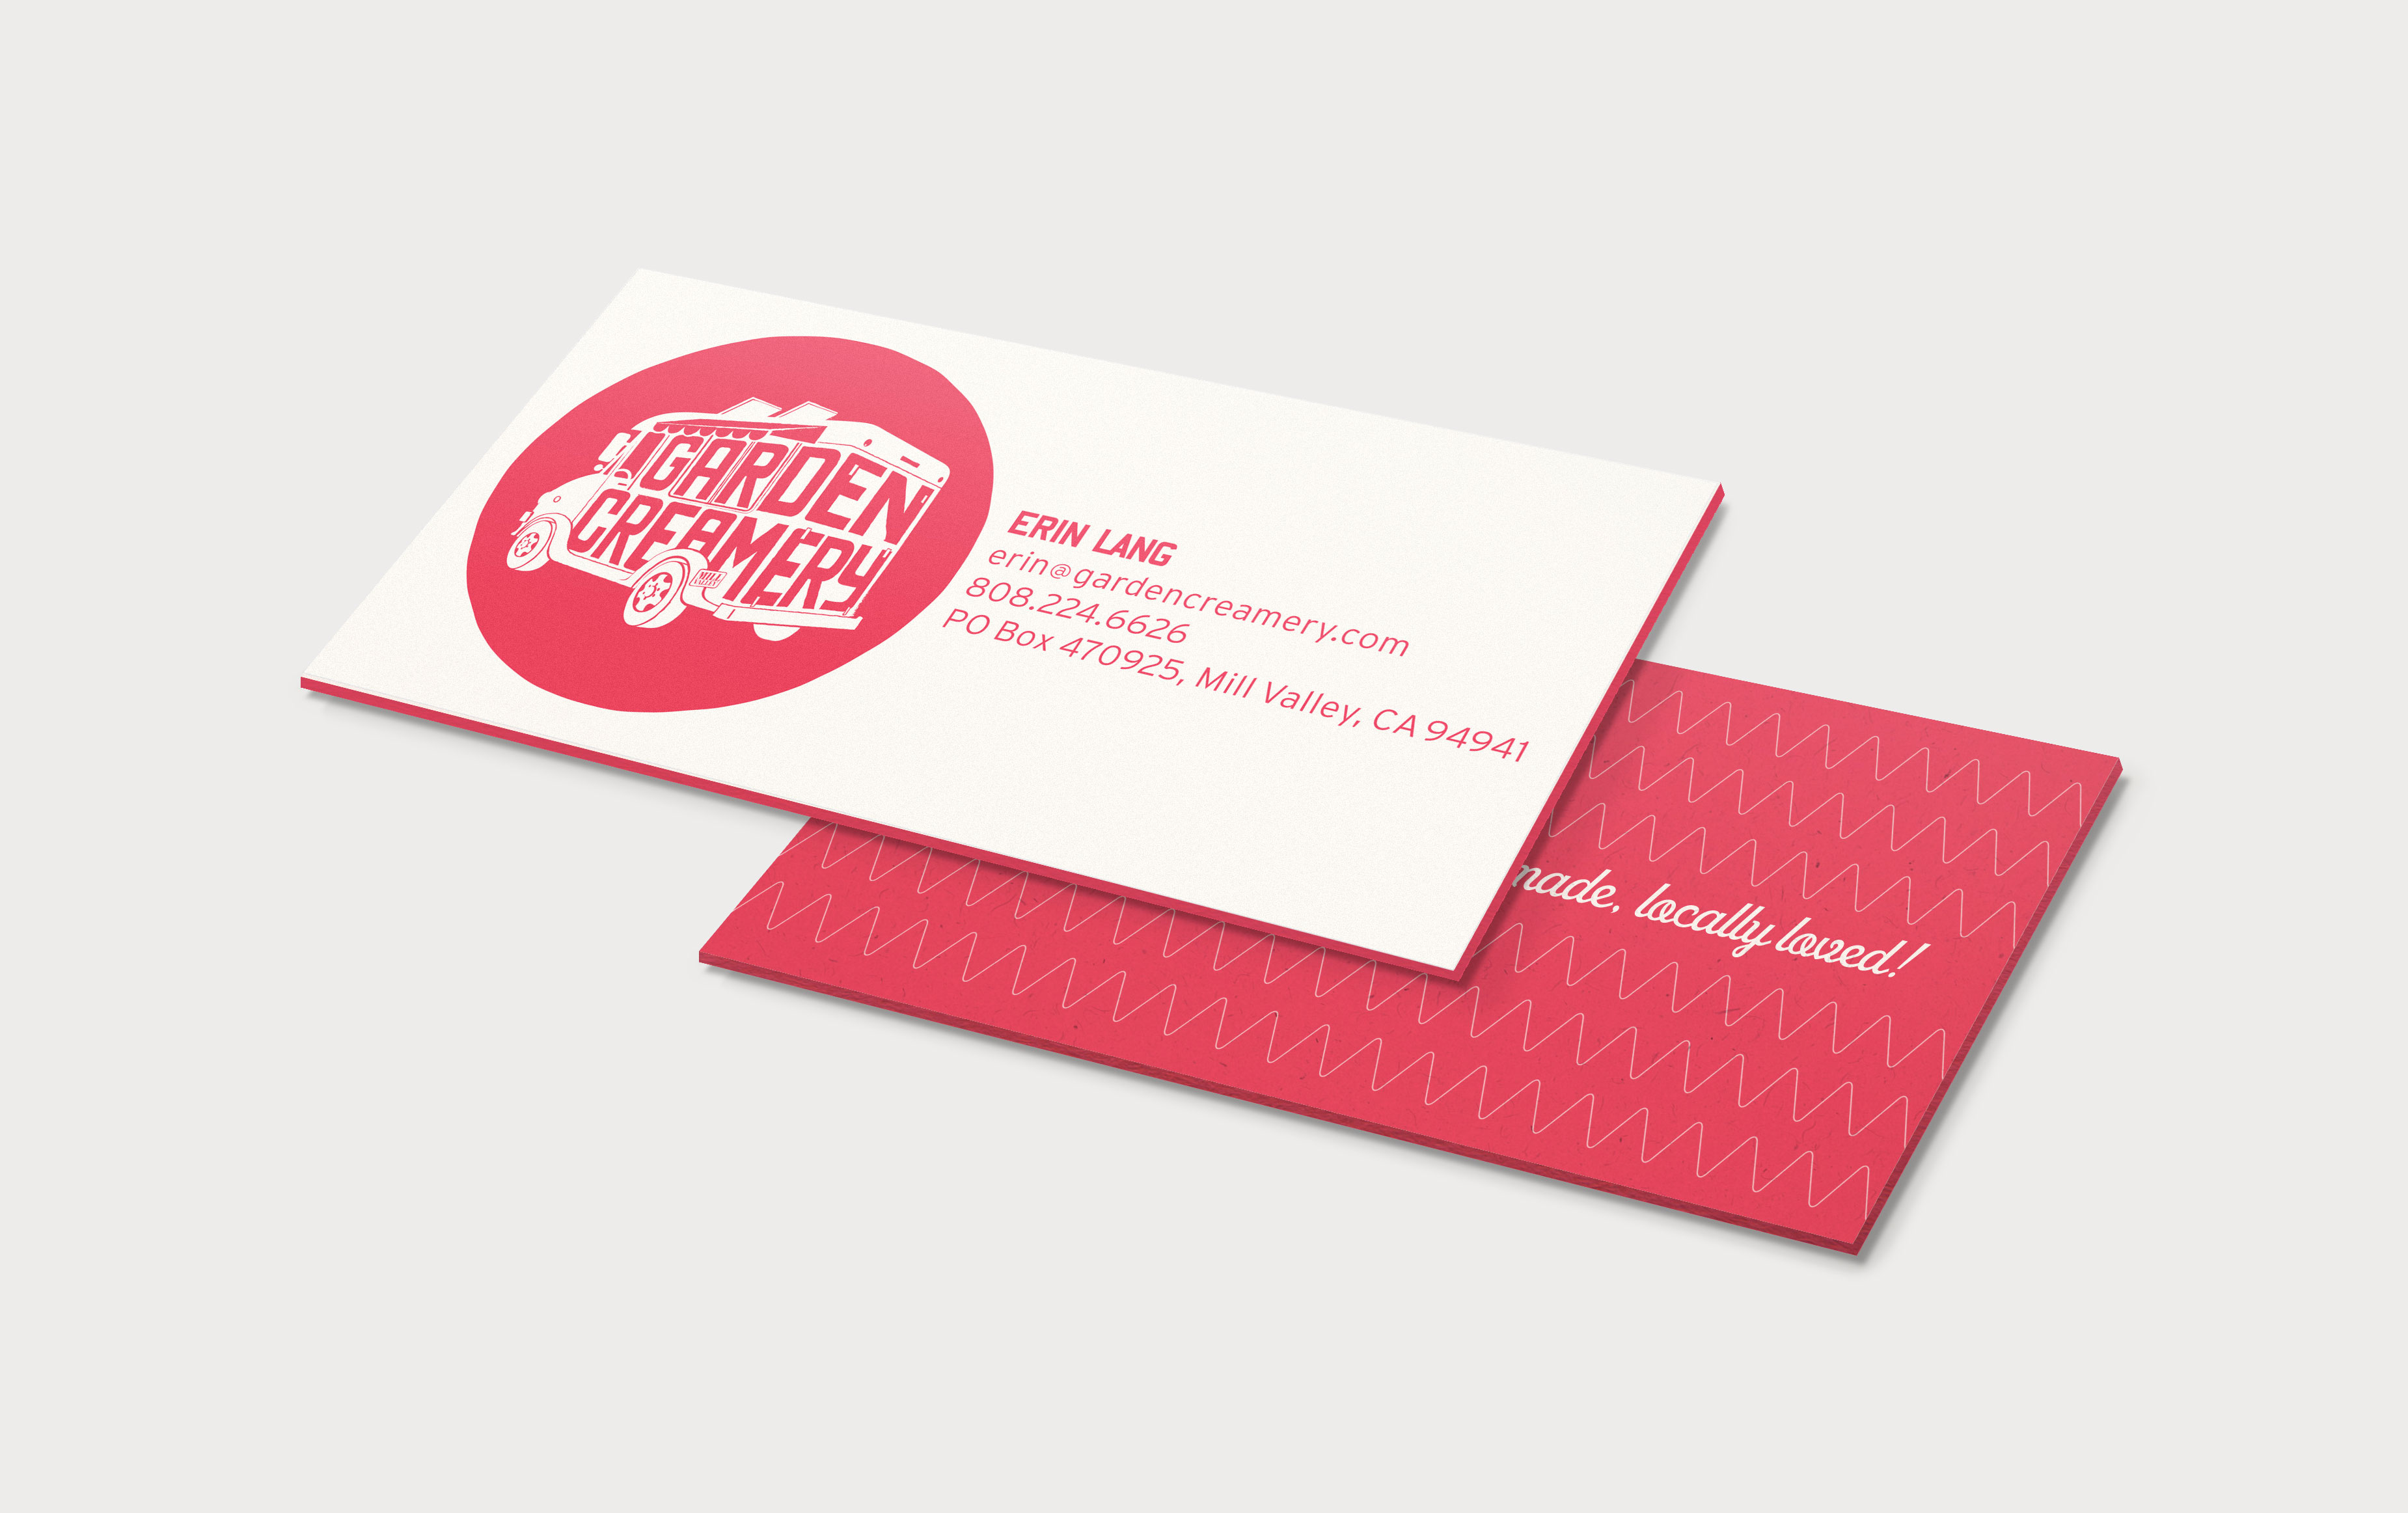 Garden creamery business card displaying front and back